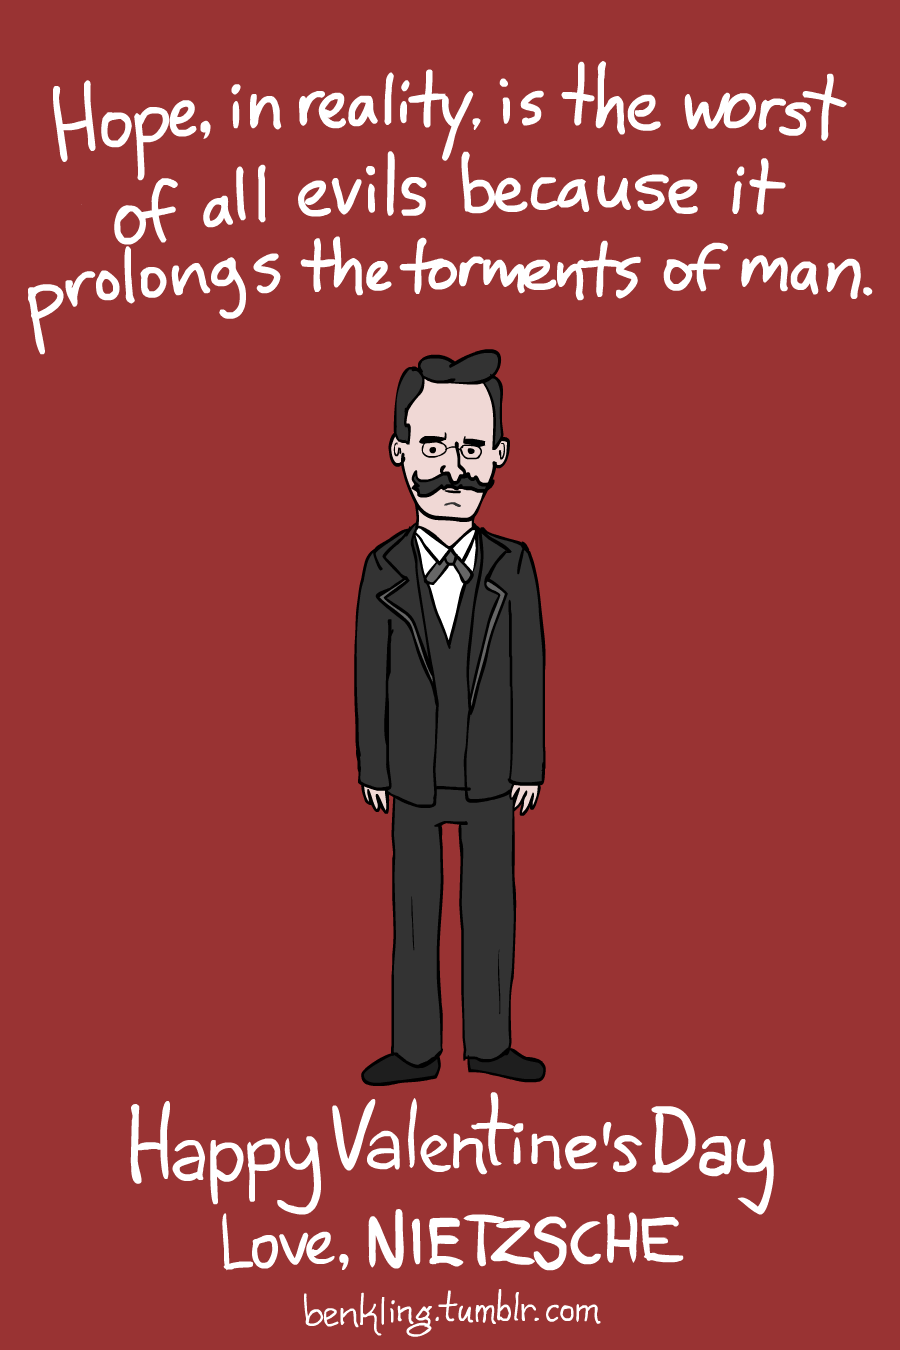 [Image - 498012] | Valentine's Day E-cards | Know Your Meme